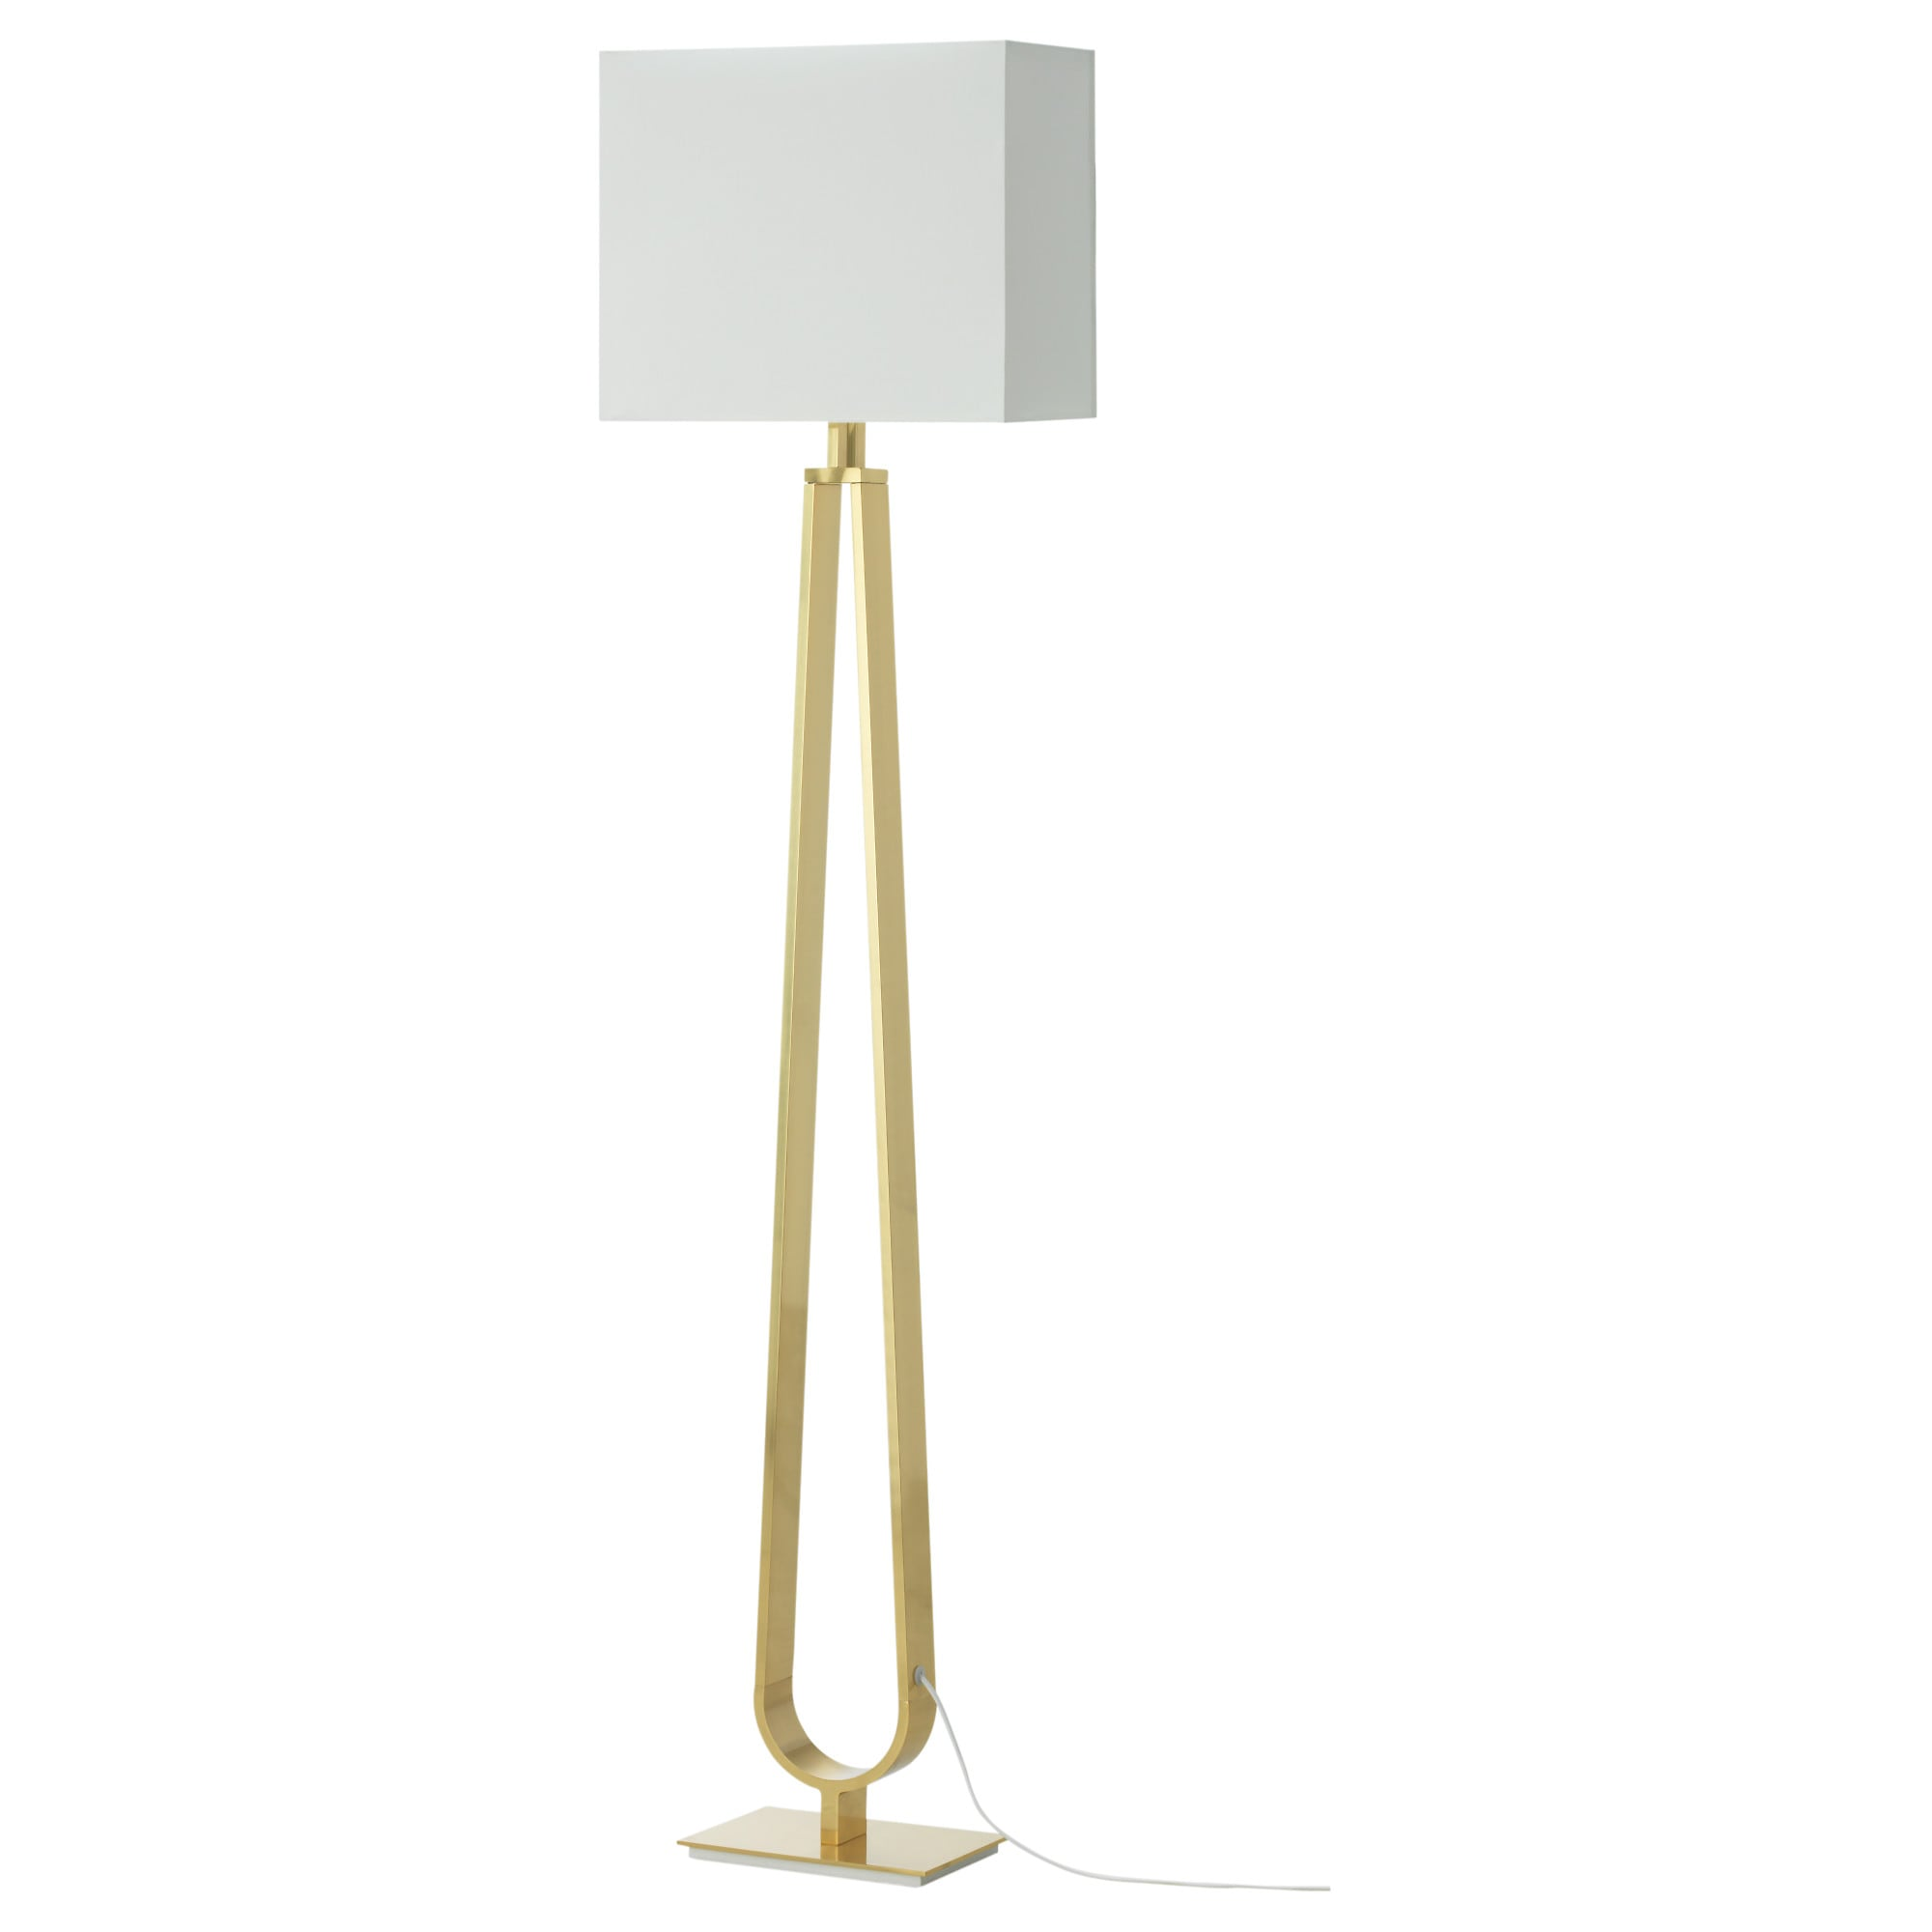 klabb floor lamp with led bulb offwhite brass color shade width